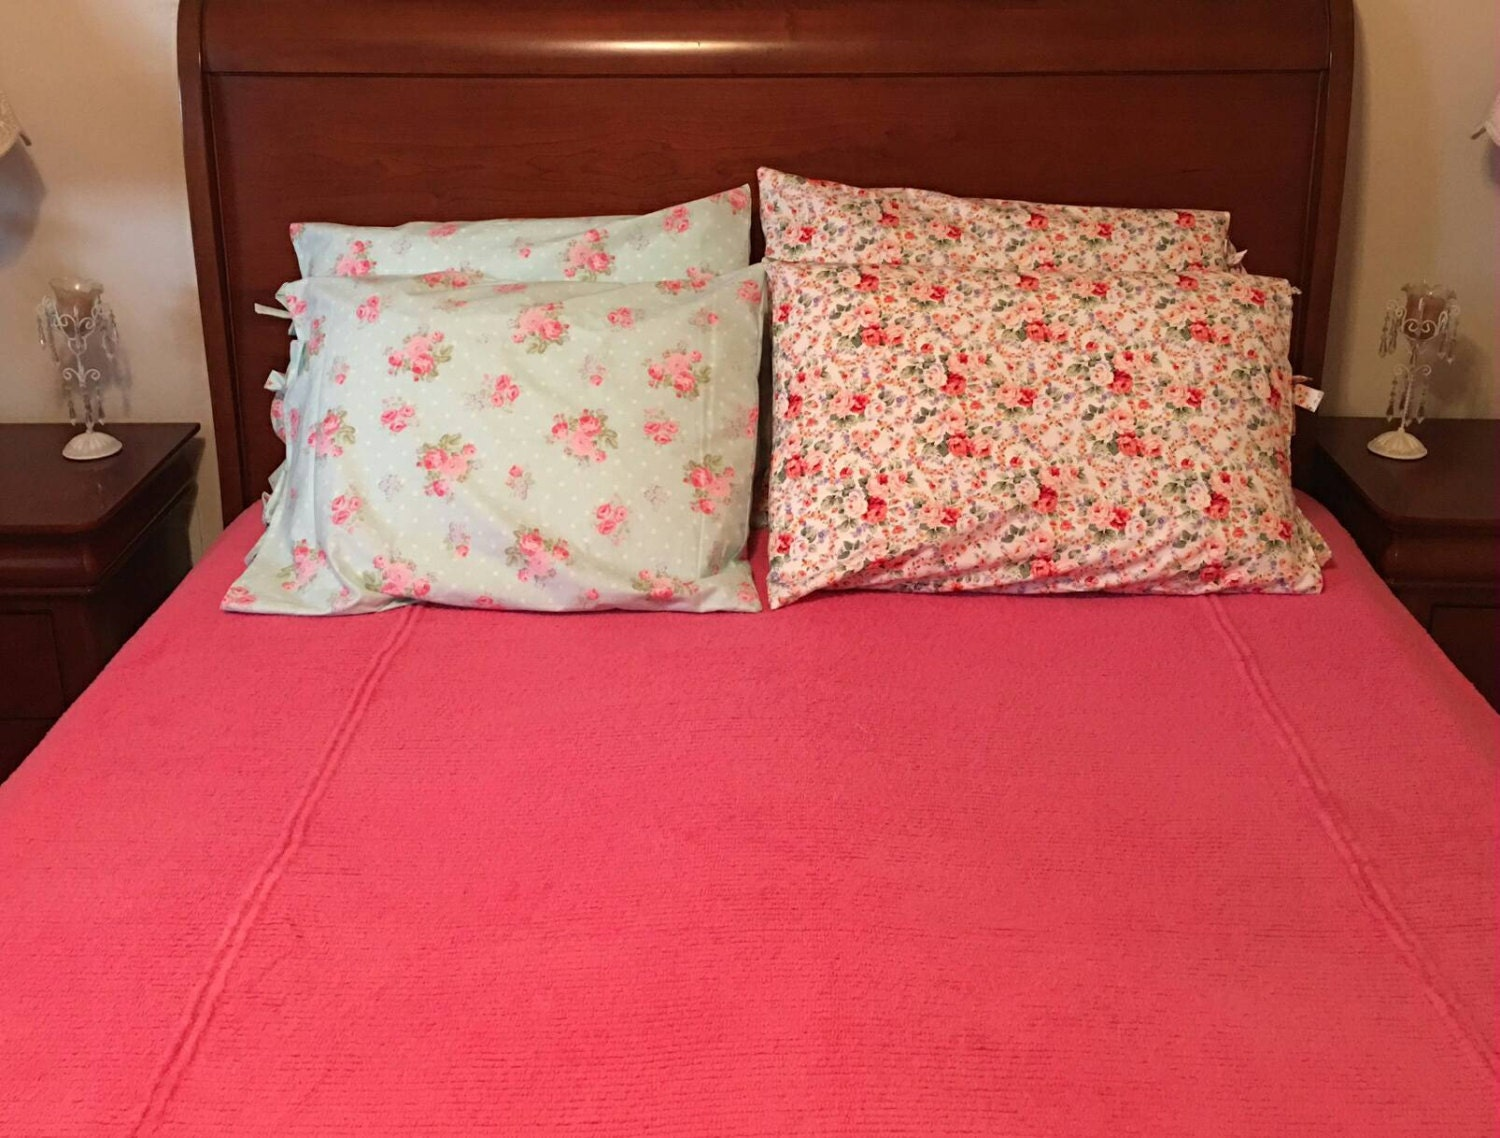 Shabby Chic Pillow Images : Shabby chic pillow case/ Cottage pillow cases/ Shabby Chic